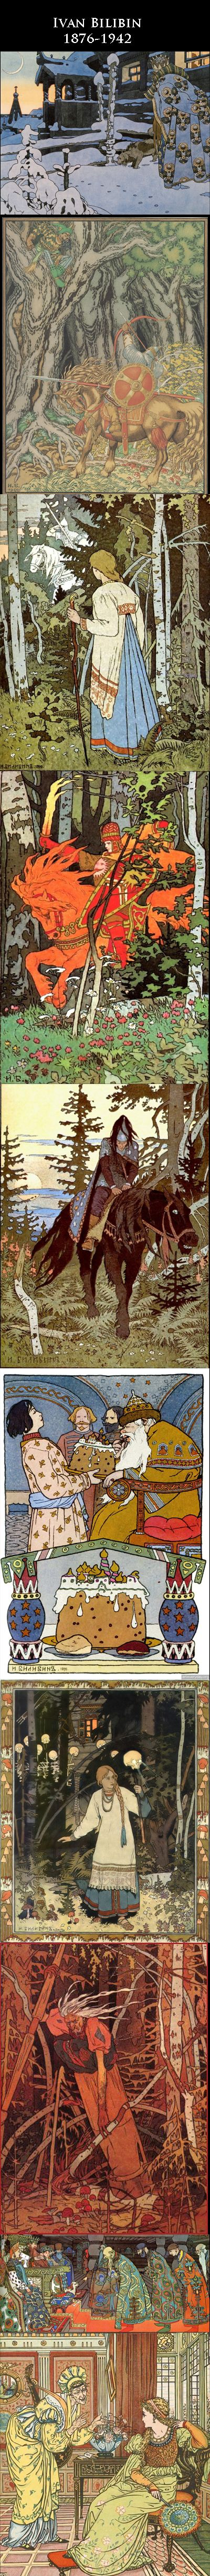 Tribute to the works of Ivan Bilibin